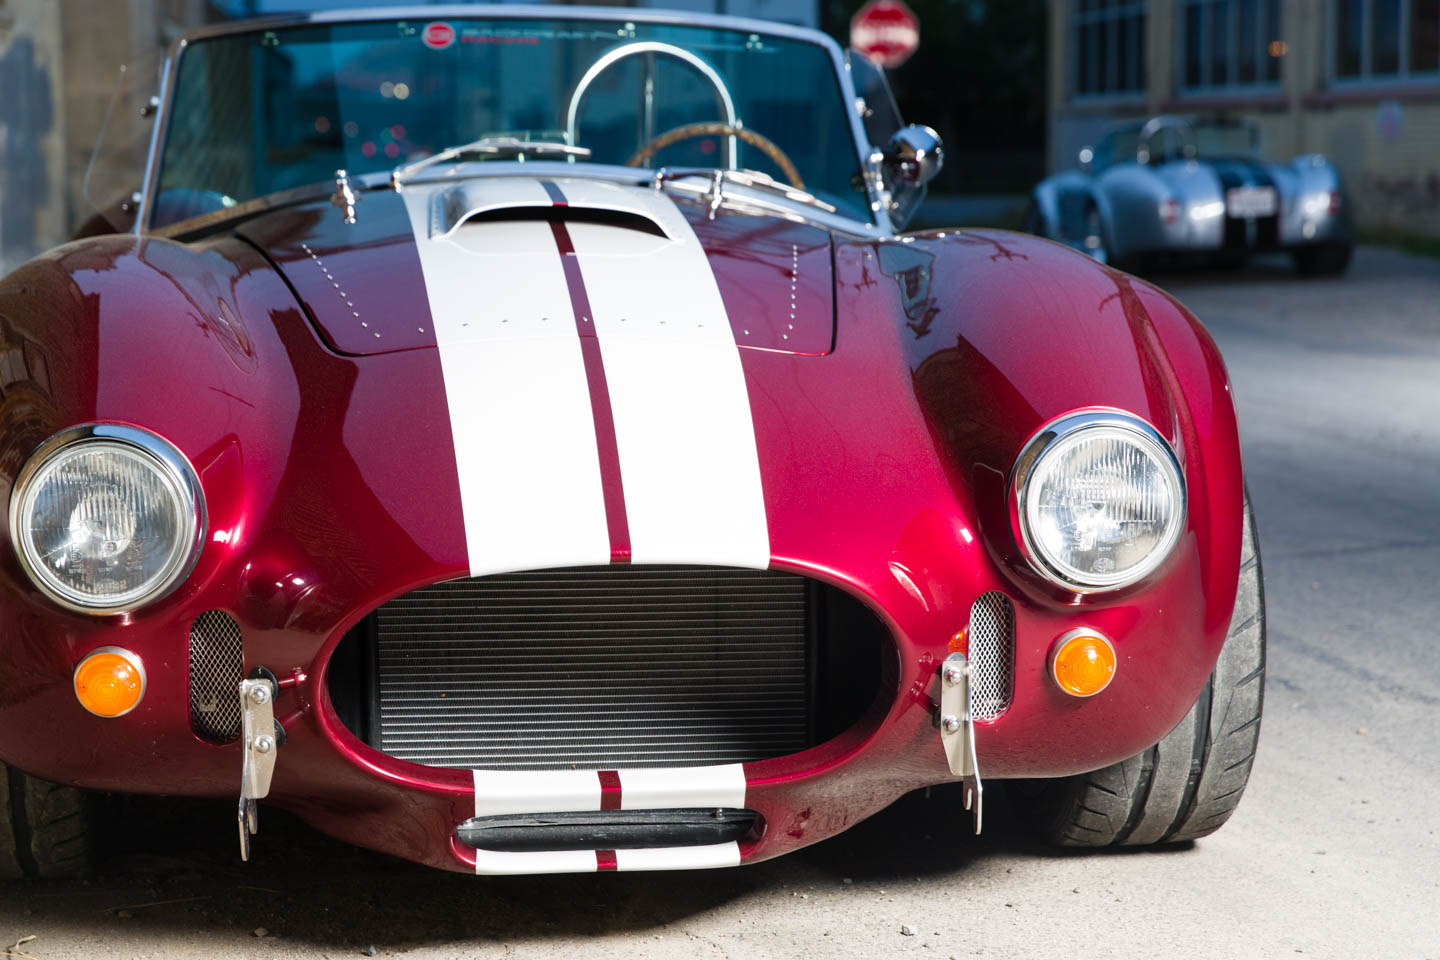 2 Shelby Cobras photographed for Prestman Auto